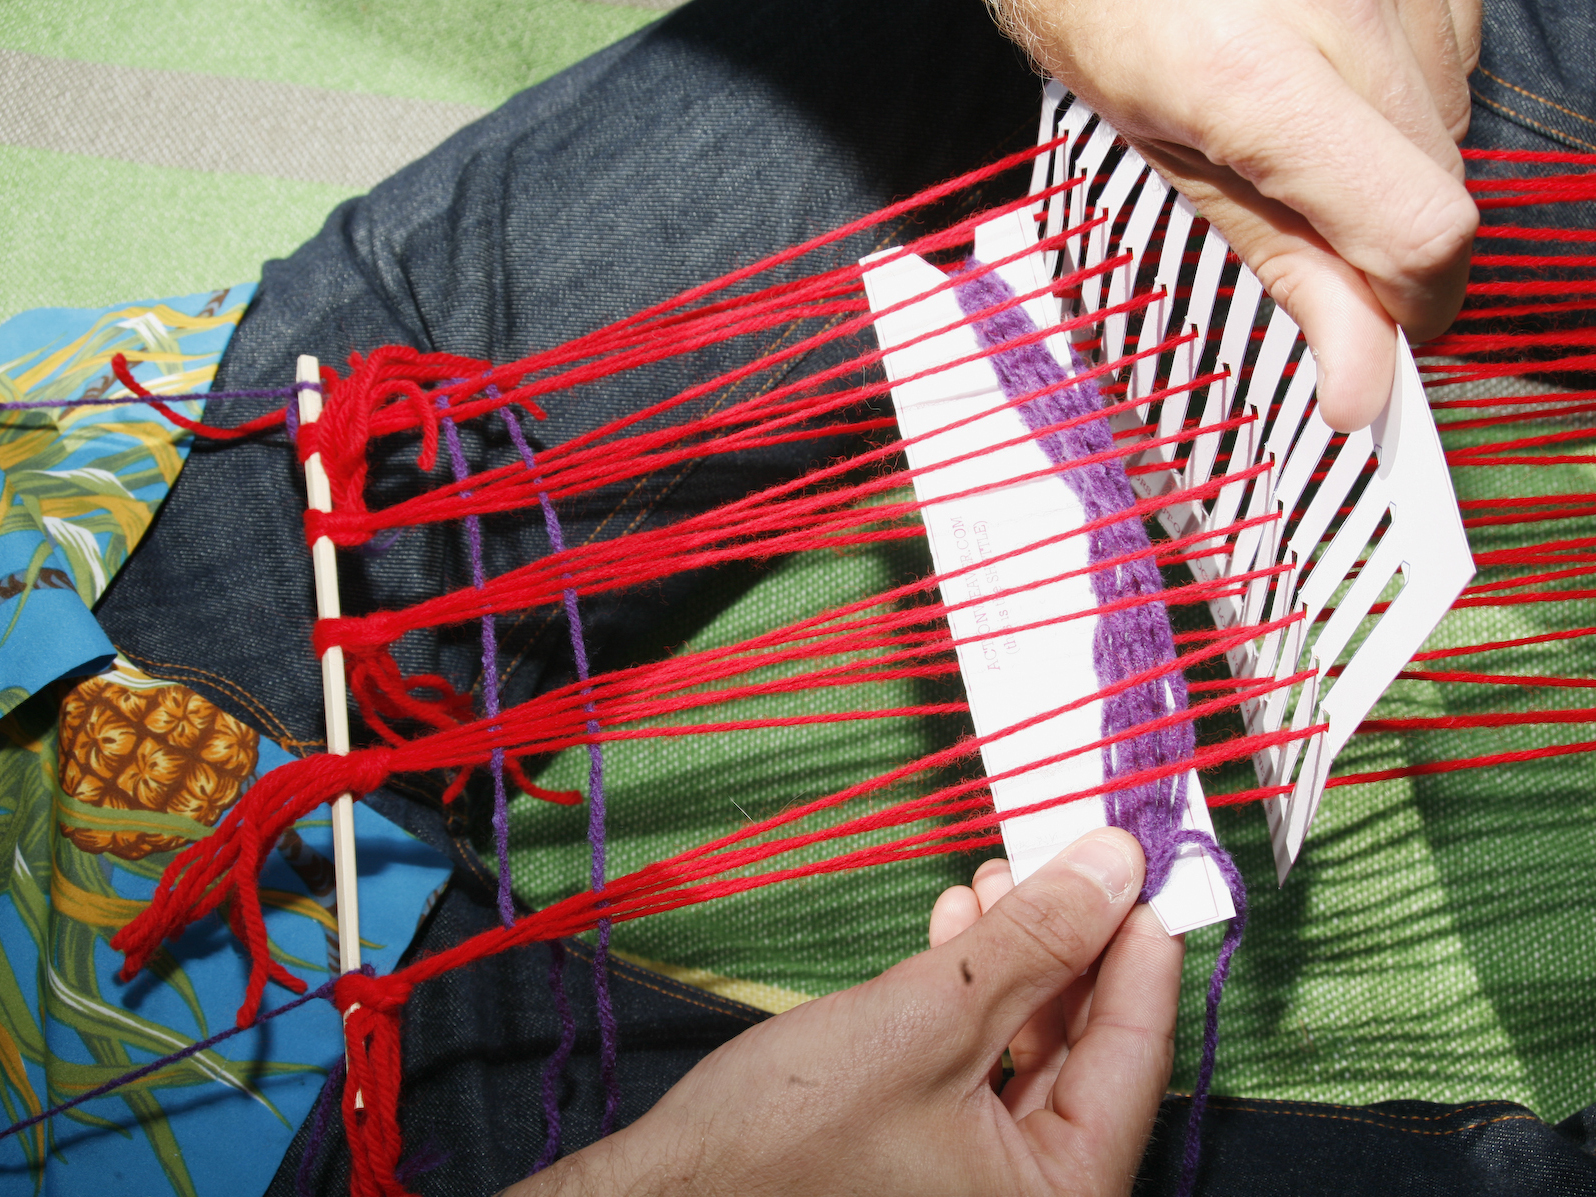 New Project: Paper Pocket Loom